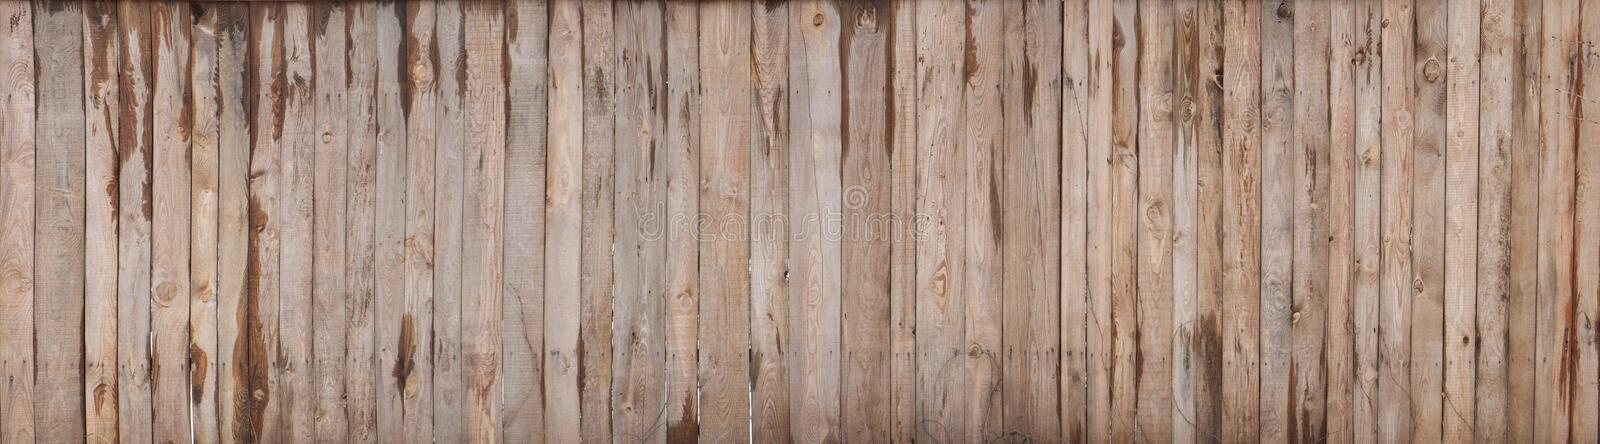 Brown wood colored plank wall texture background stock photography